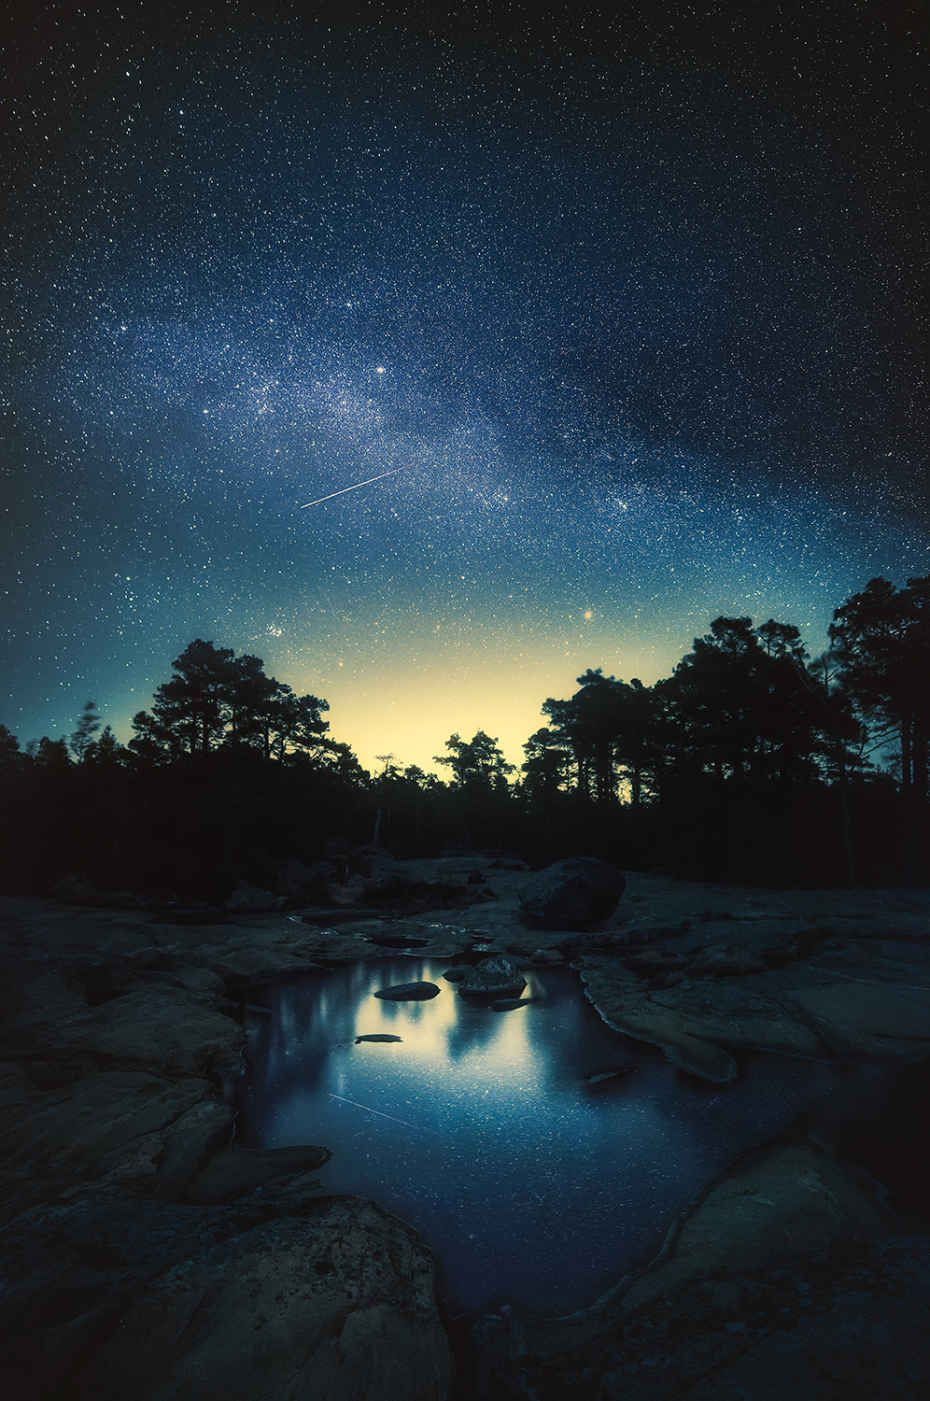 Stunning Photos Taken At Dusk Capture Finland S Majestic Landscapes Nature Photography Beautiful Landscapes Night Skies